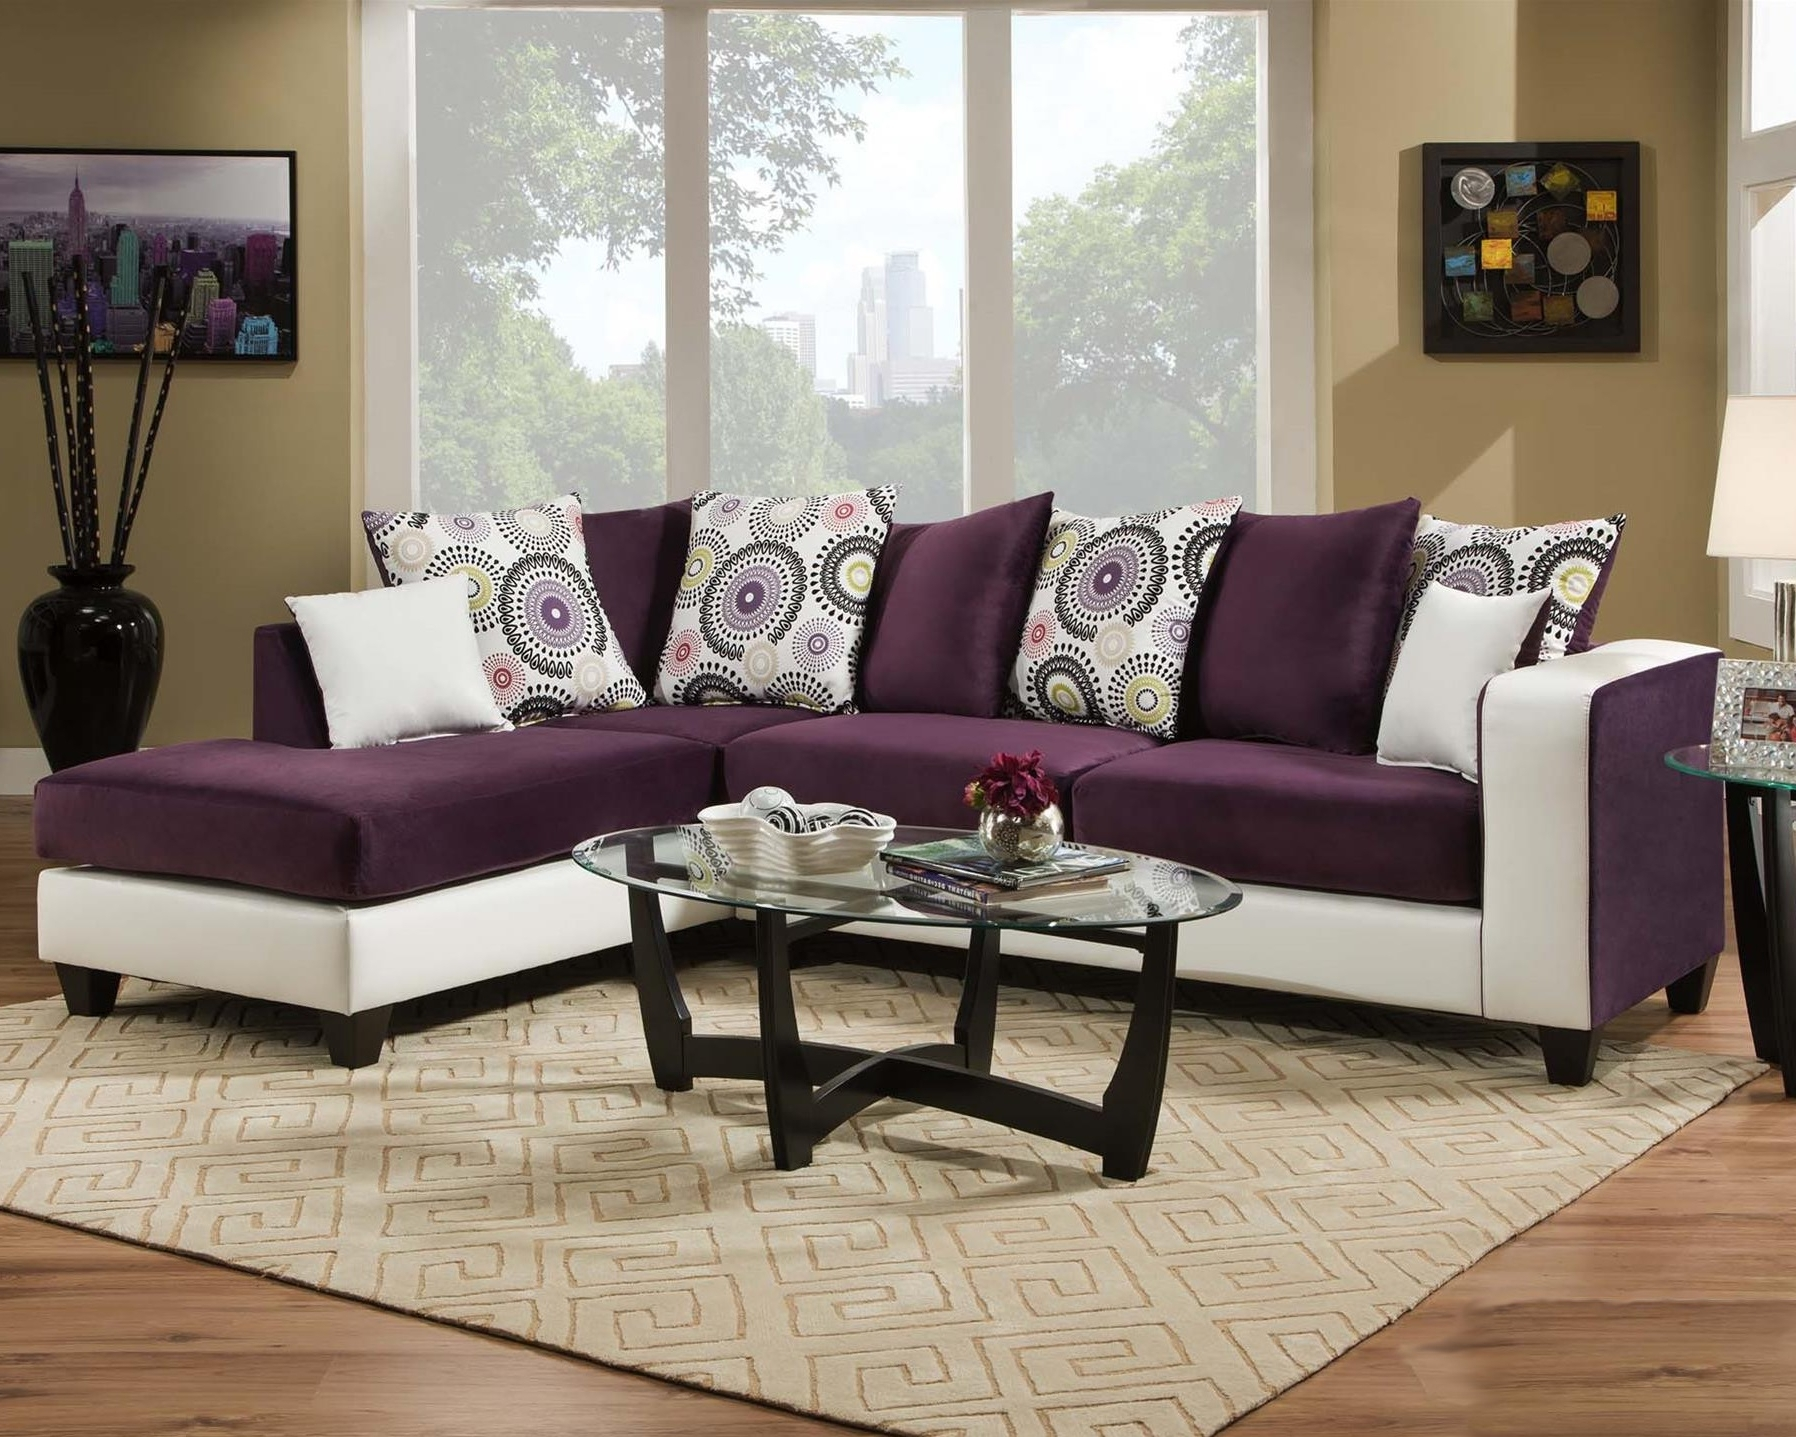 Famous Farmers Furniture Sectional Sofas Inside Winsome Design Farmers Furniture Living Room Sets Charming (View 7 of 15)